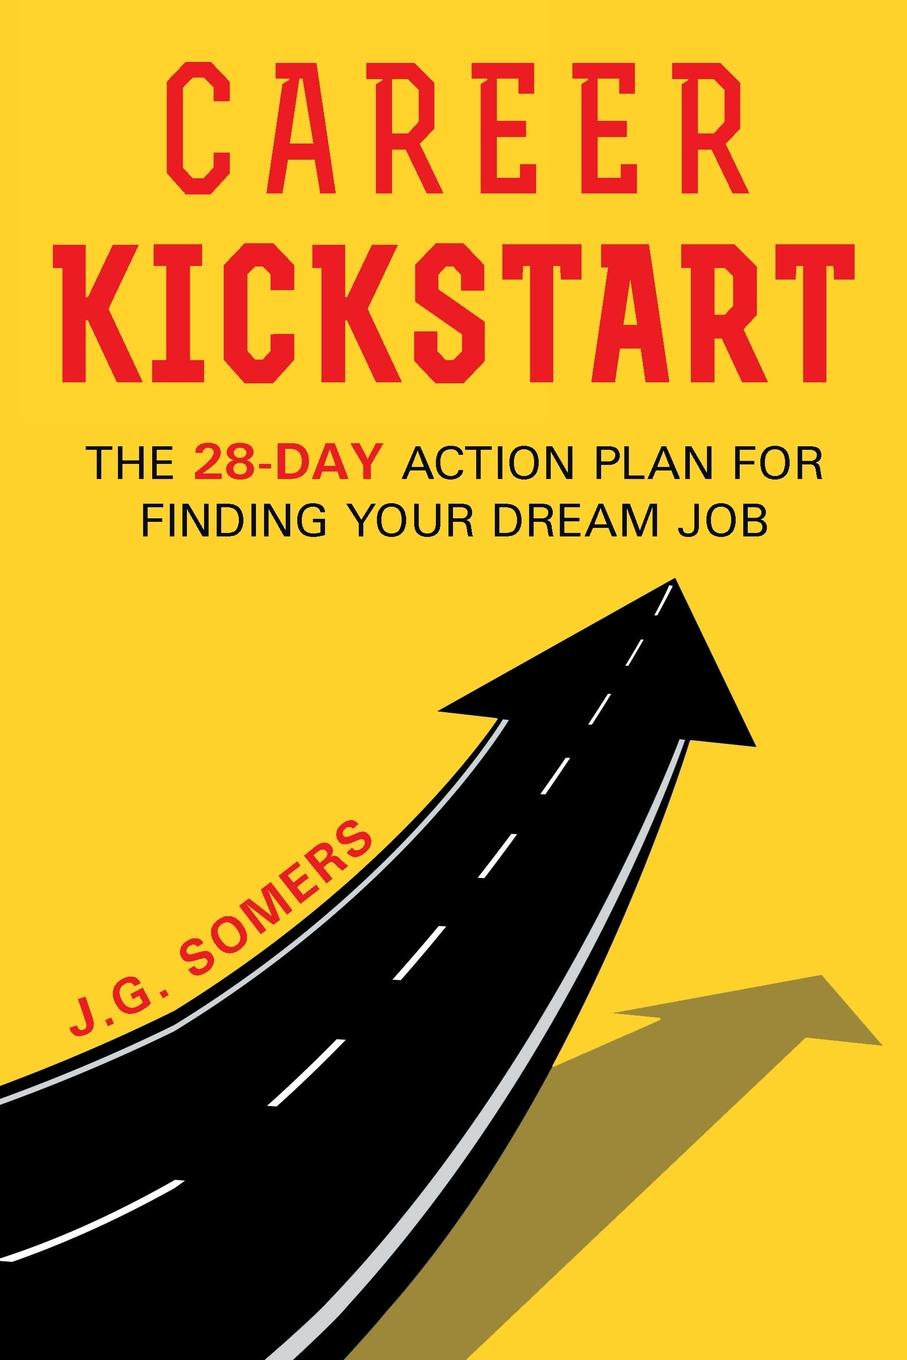 J.G. Somers The Career Kickstart Your 28-Day Action Plan for Finding Your Dream Job цена